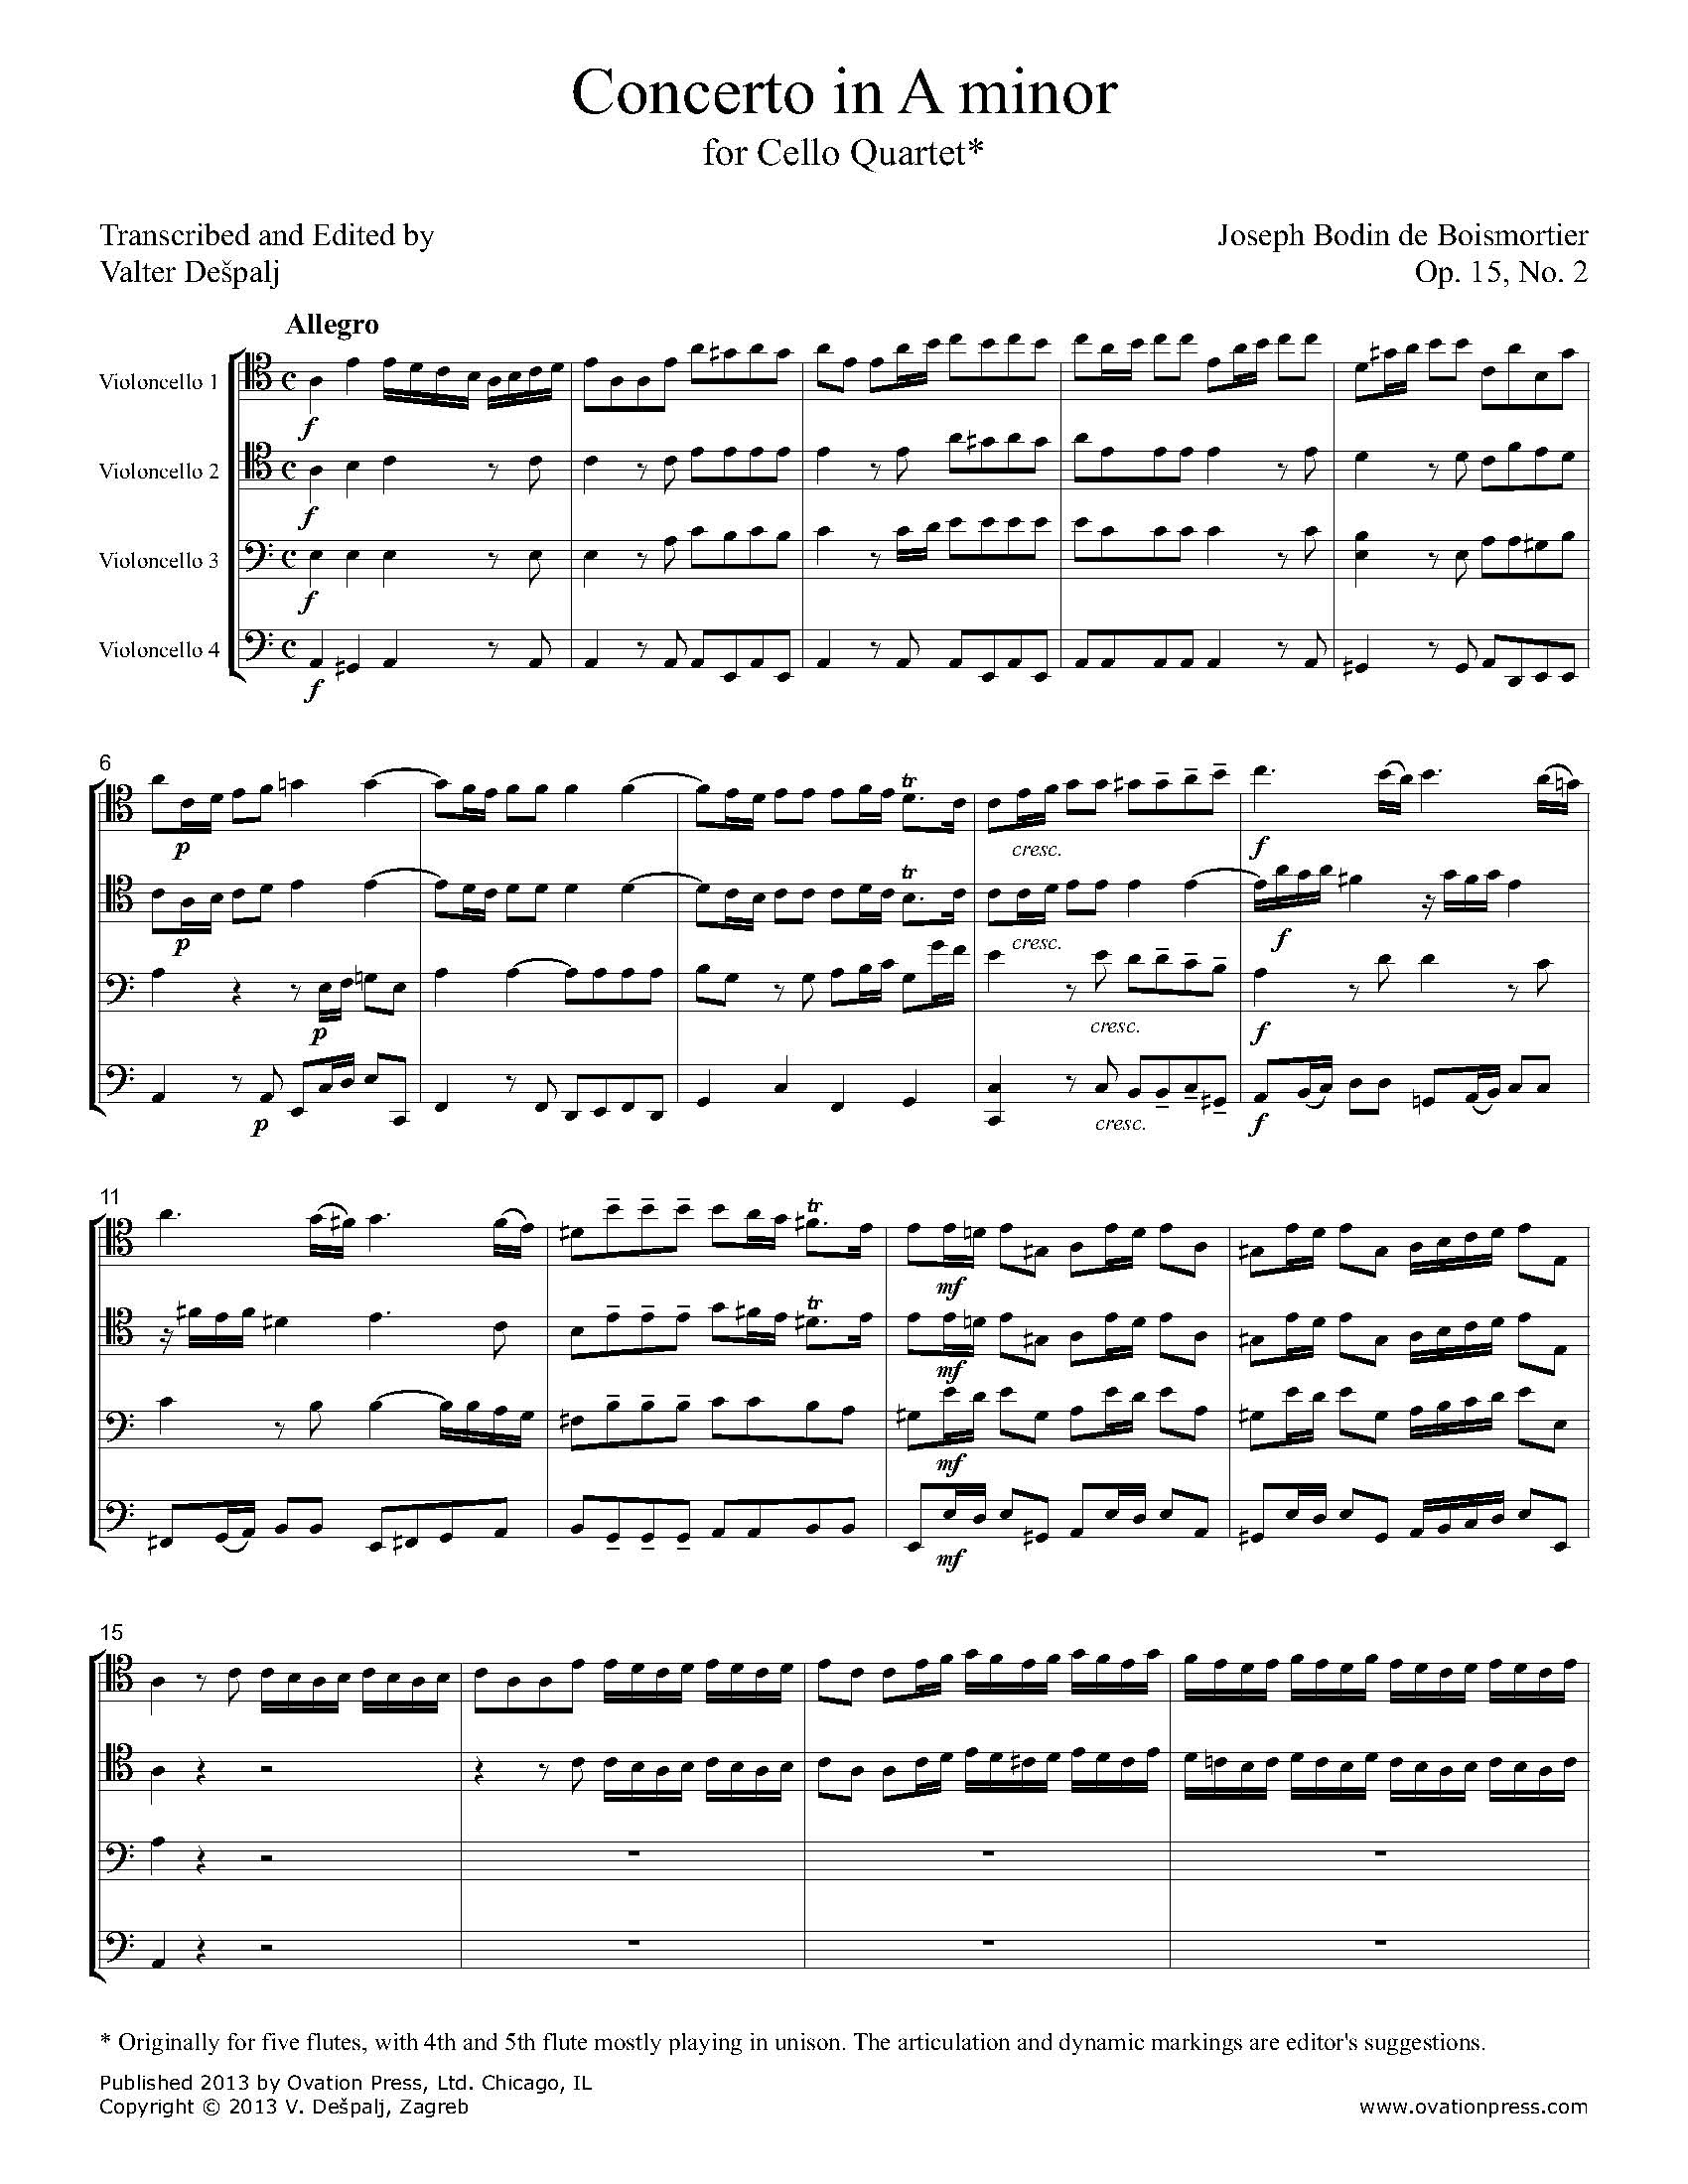 Boismortier Concerto in A minor Transcribed for Cello Quartet